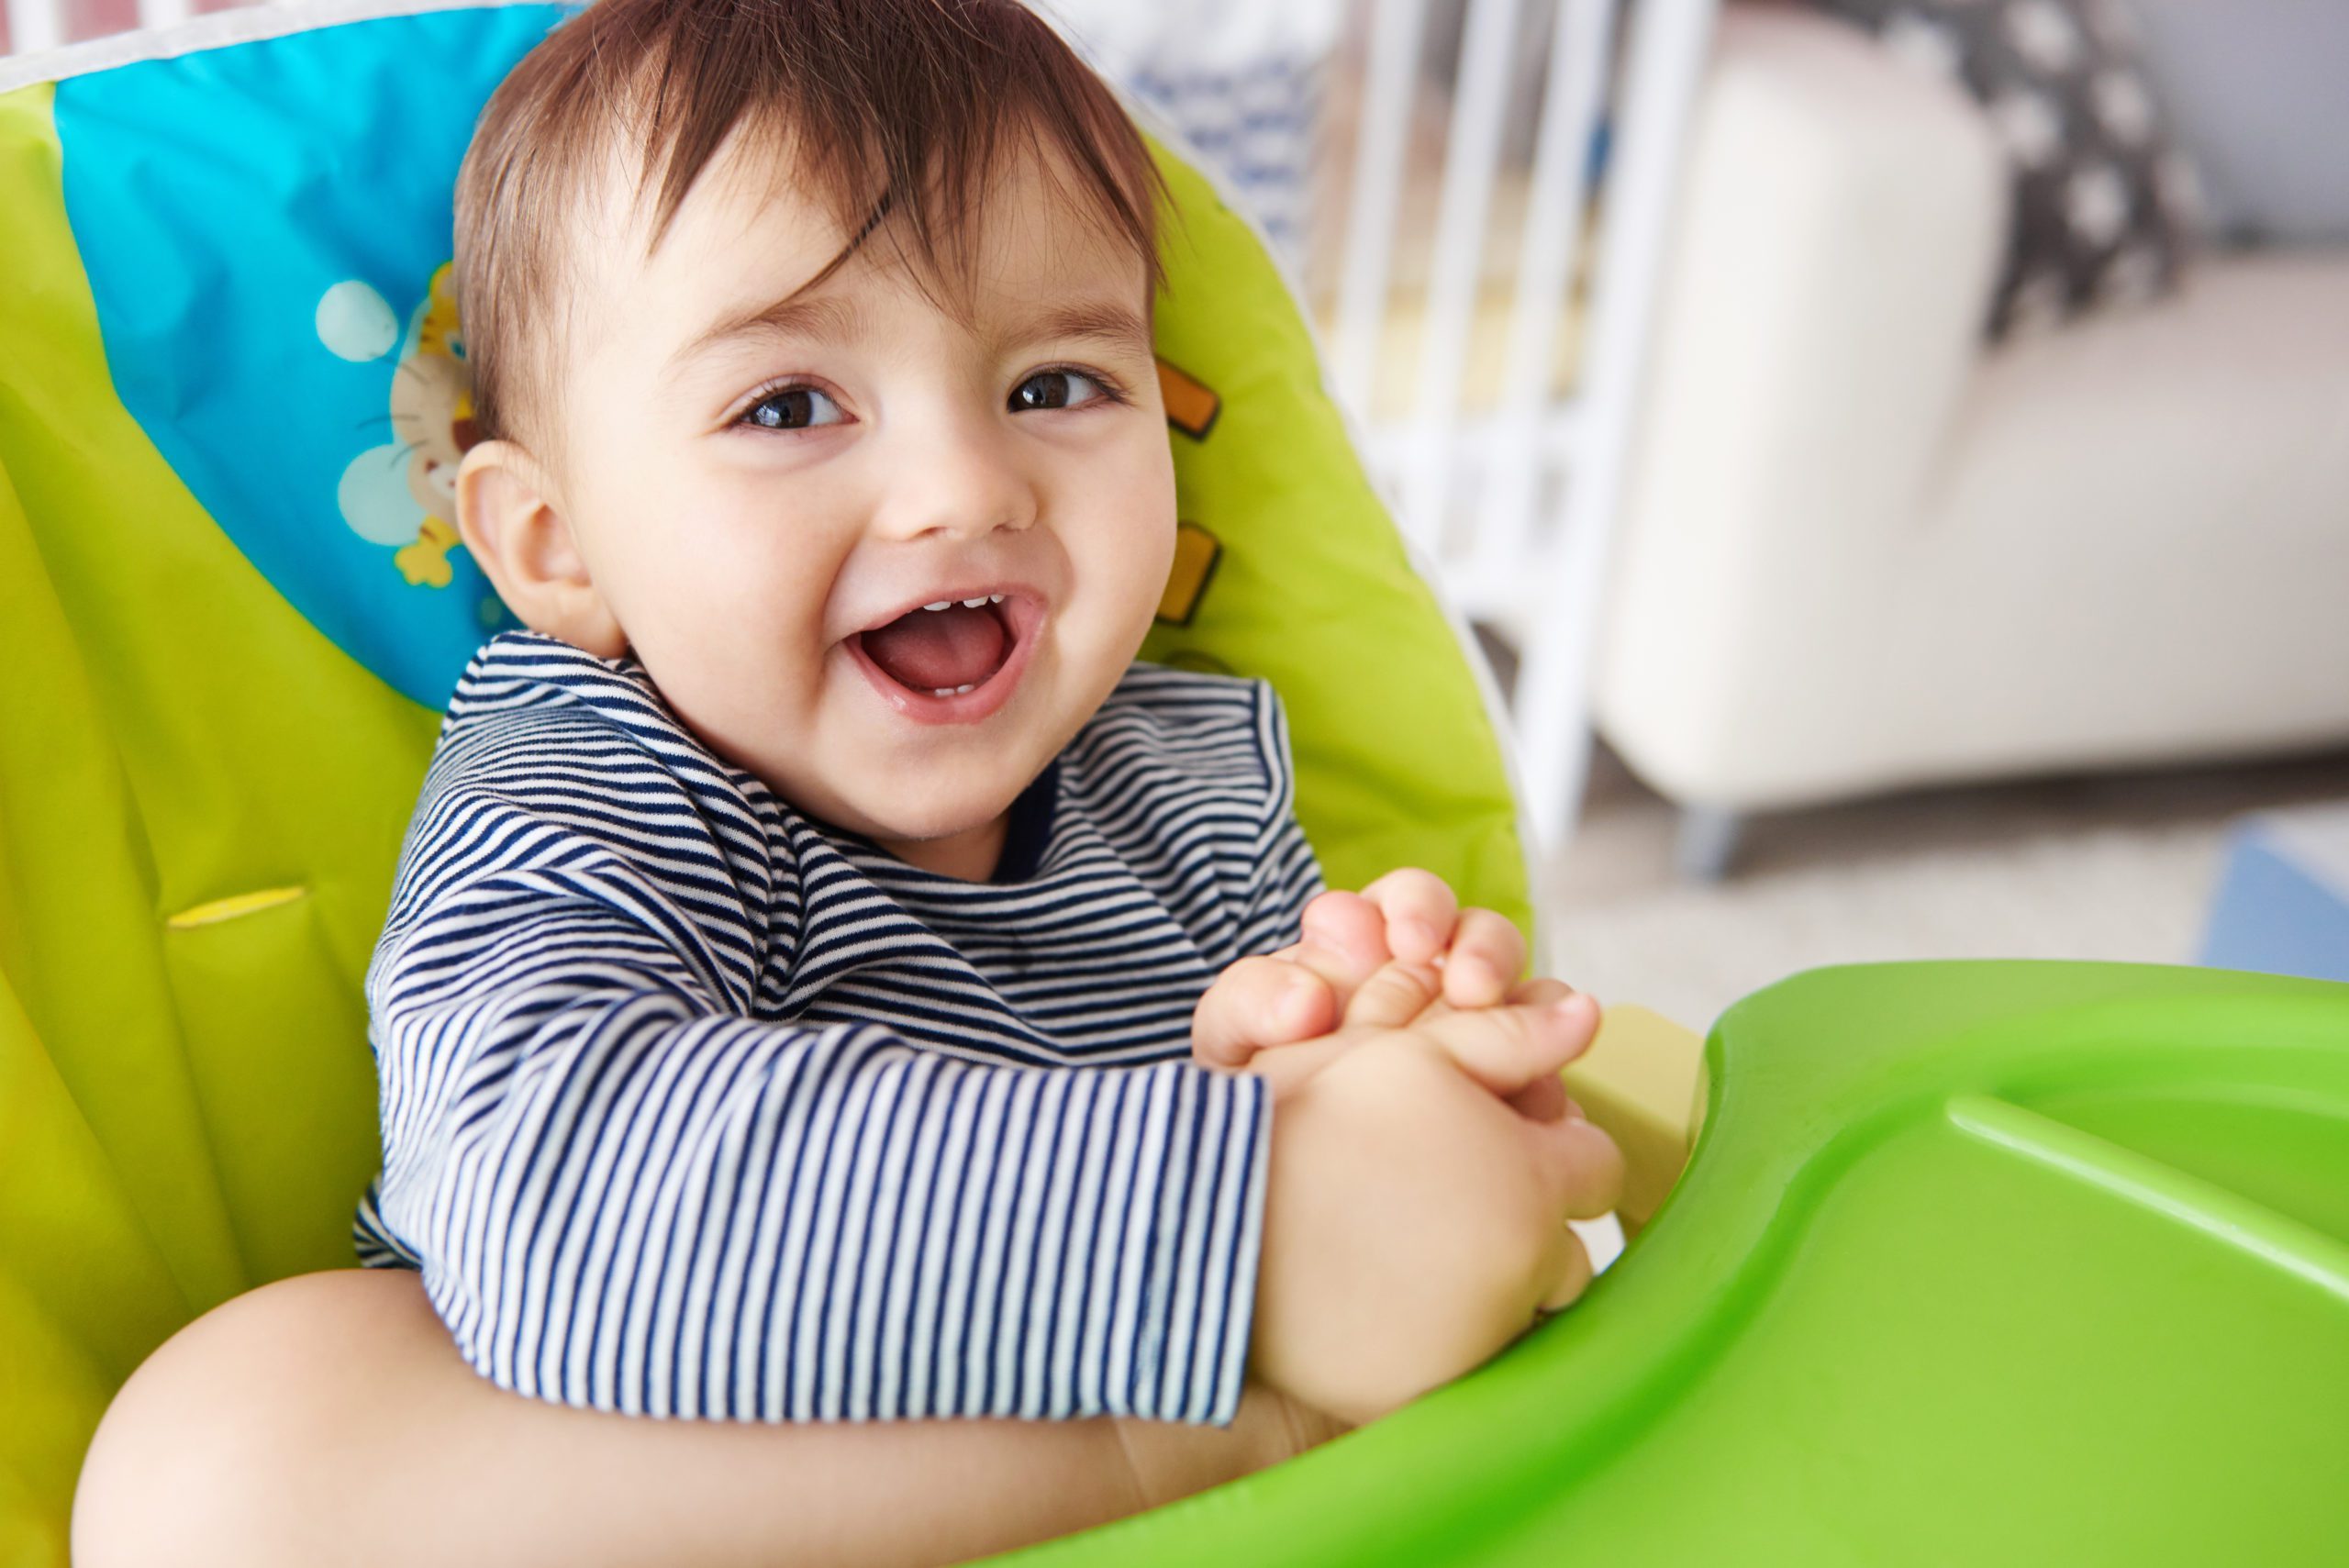 To help your baby to thrive, there are several activities that you can engage in with them as you go about your day. Work on these activities regularly, and you will see them growing and learning rapidly, right before your eyes.